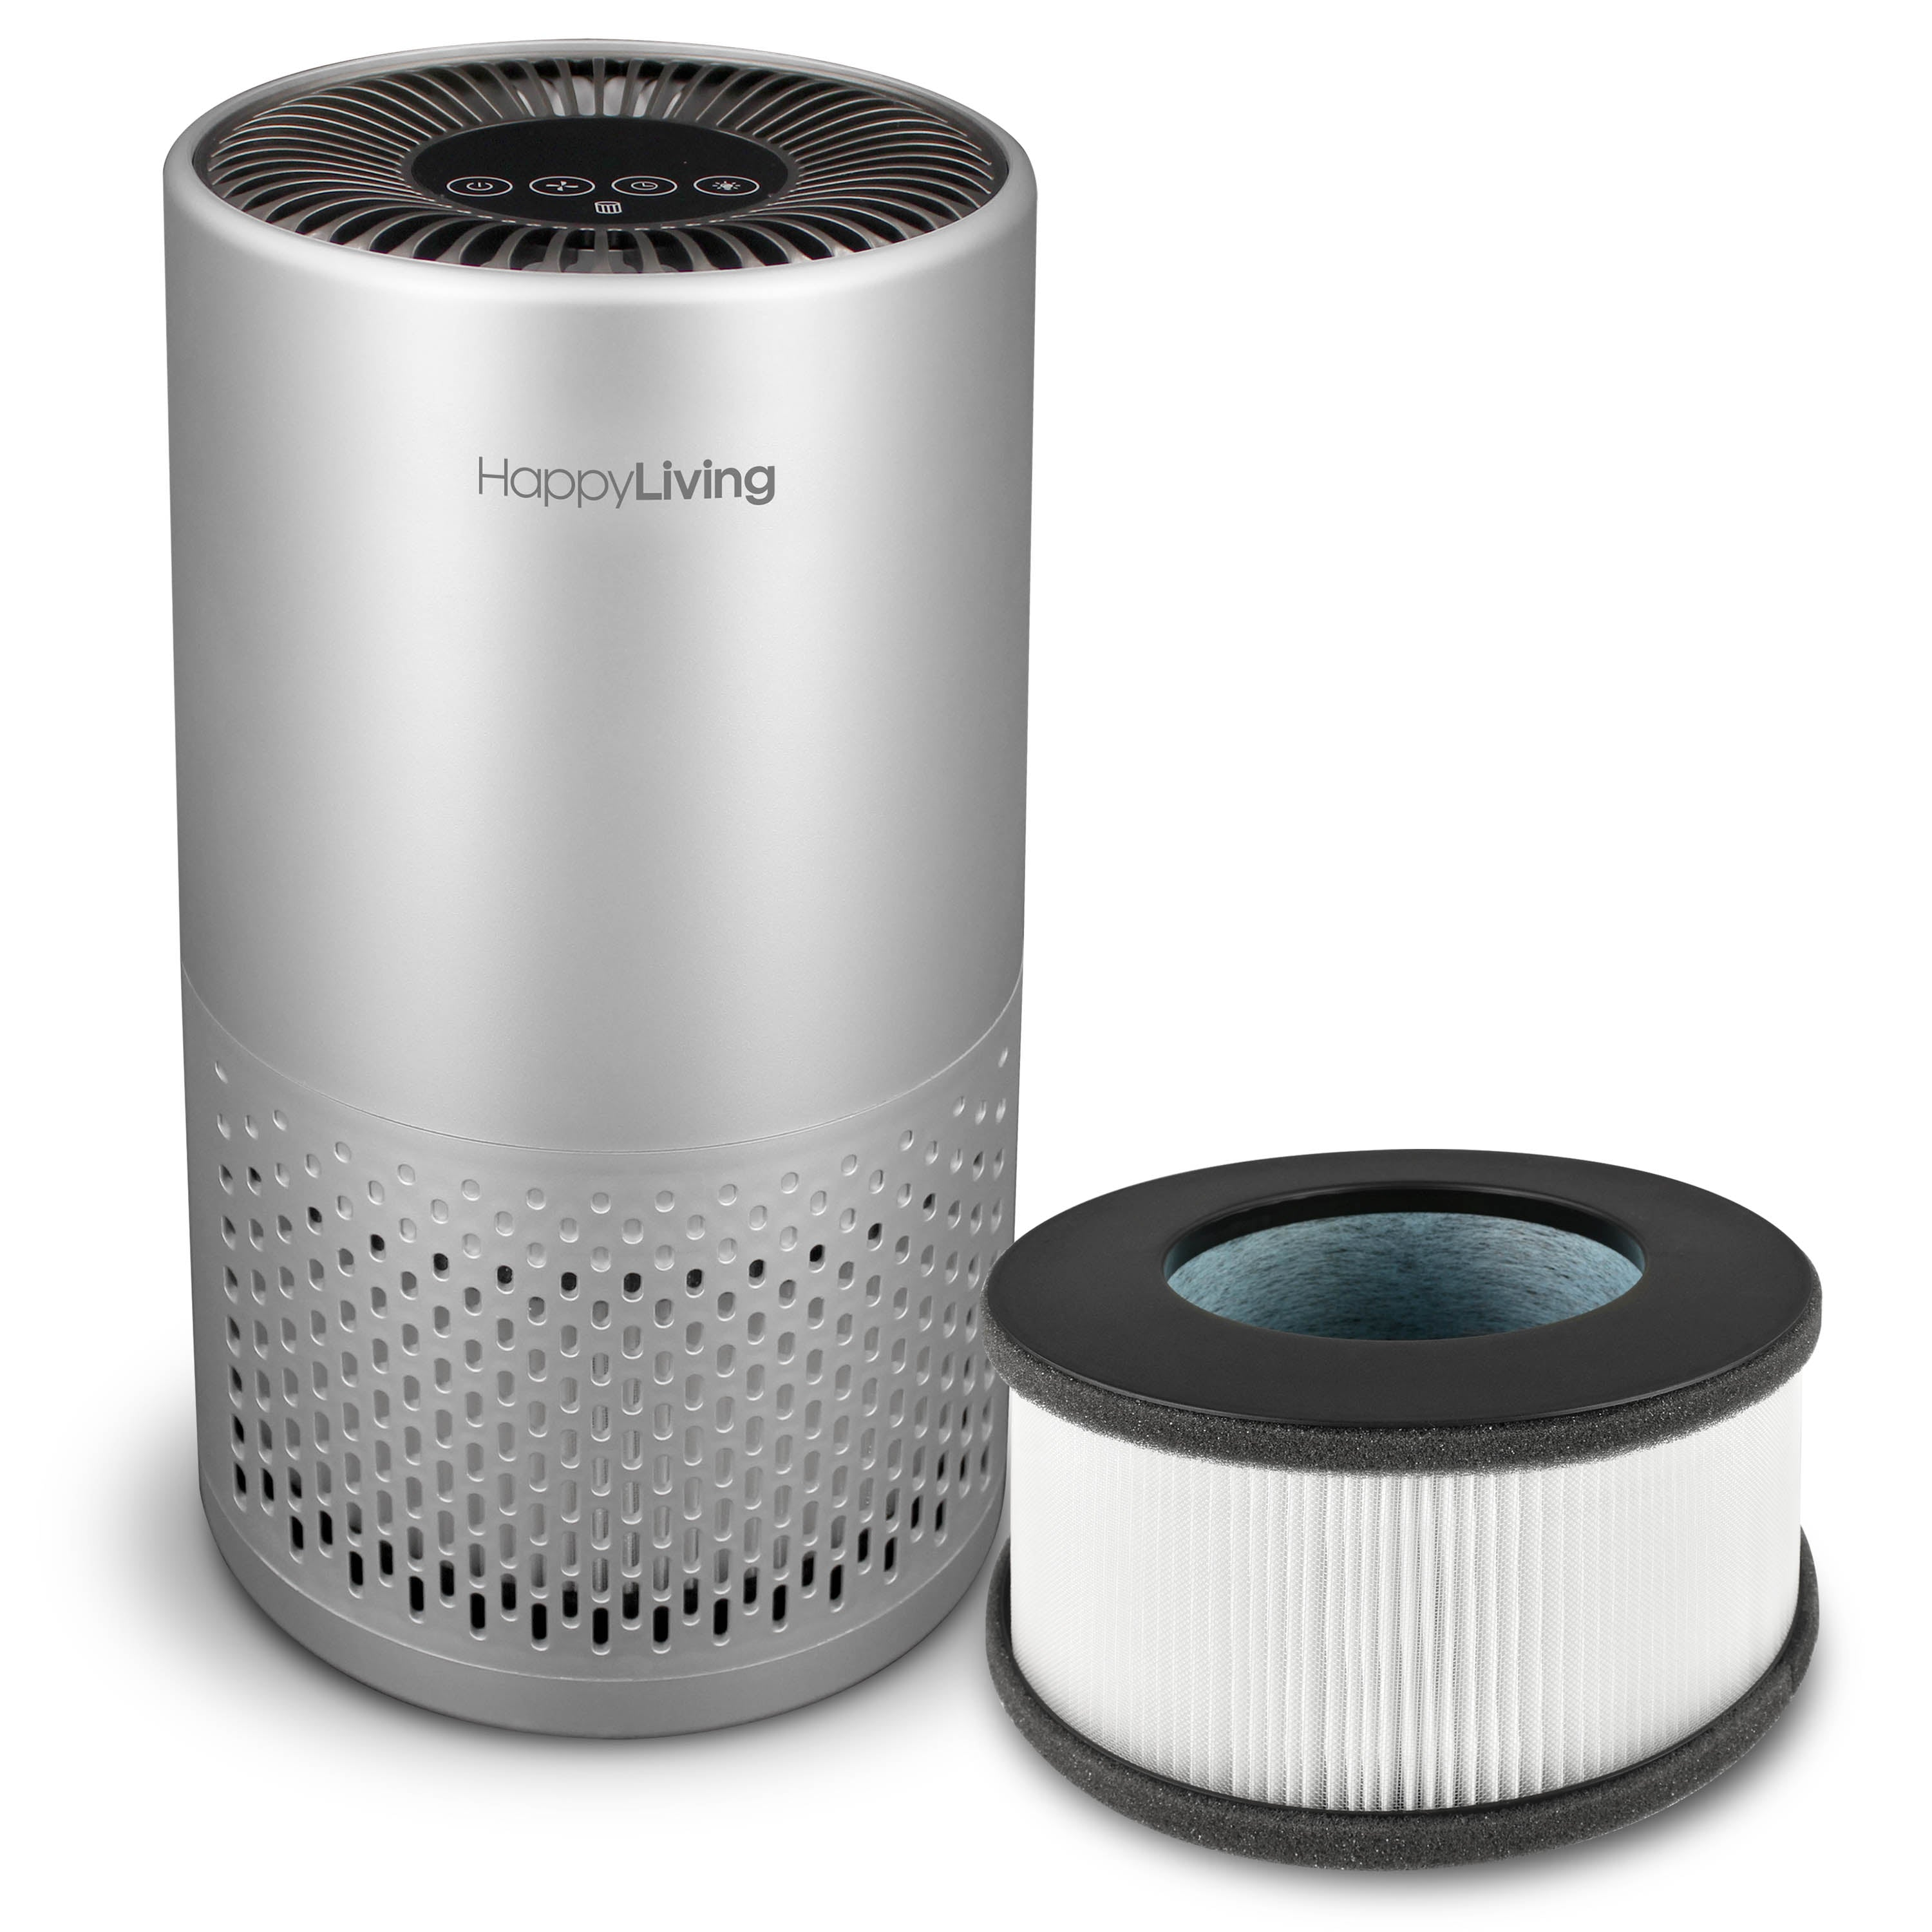 An image of a gray HL-002 air purifier.